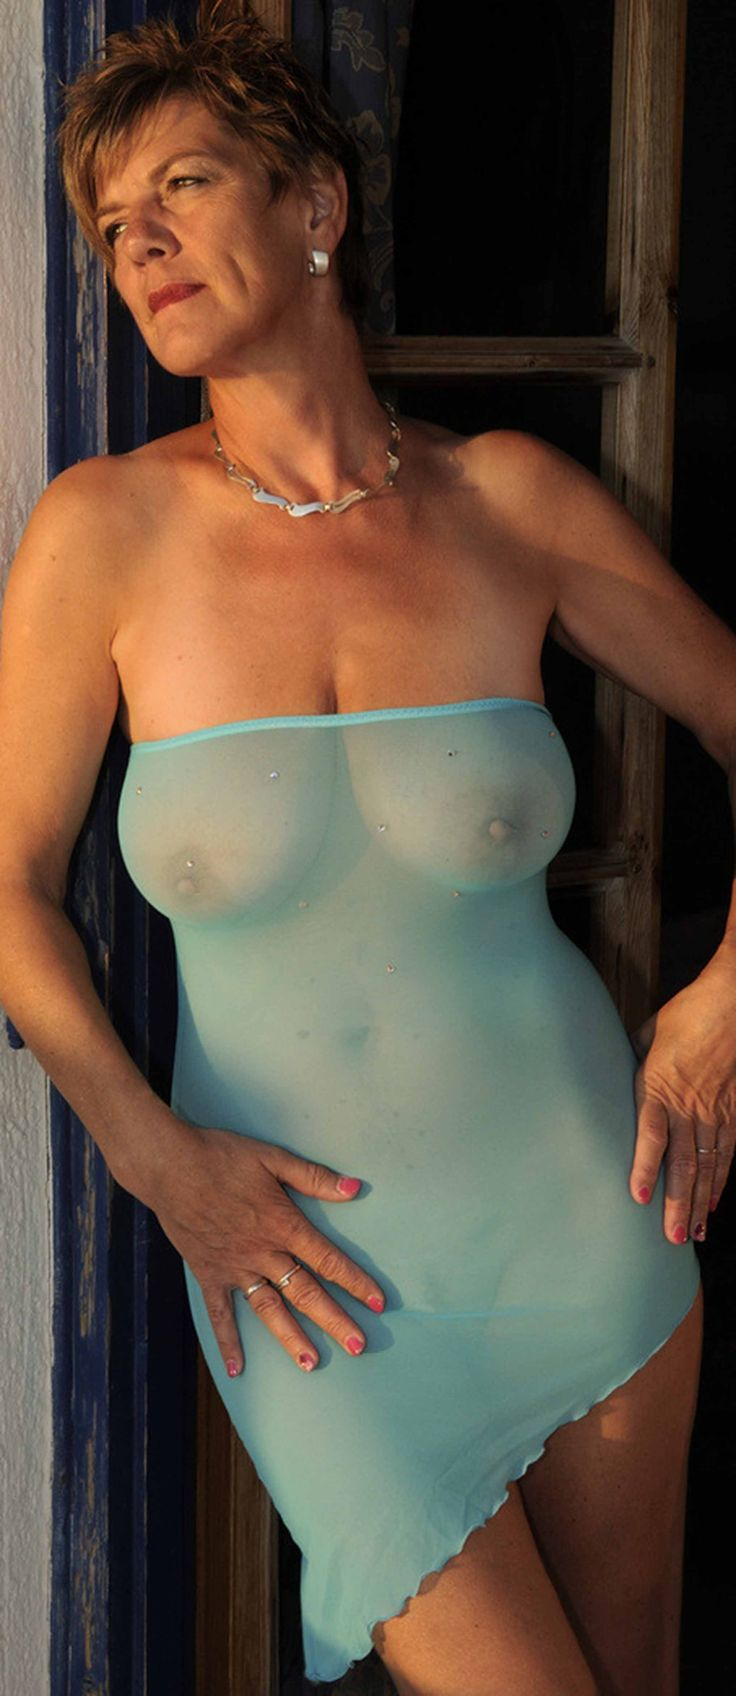 452 best older women images on pinterest | older women, boobs and curves